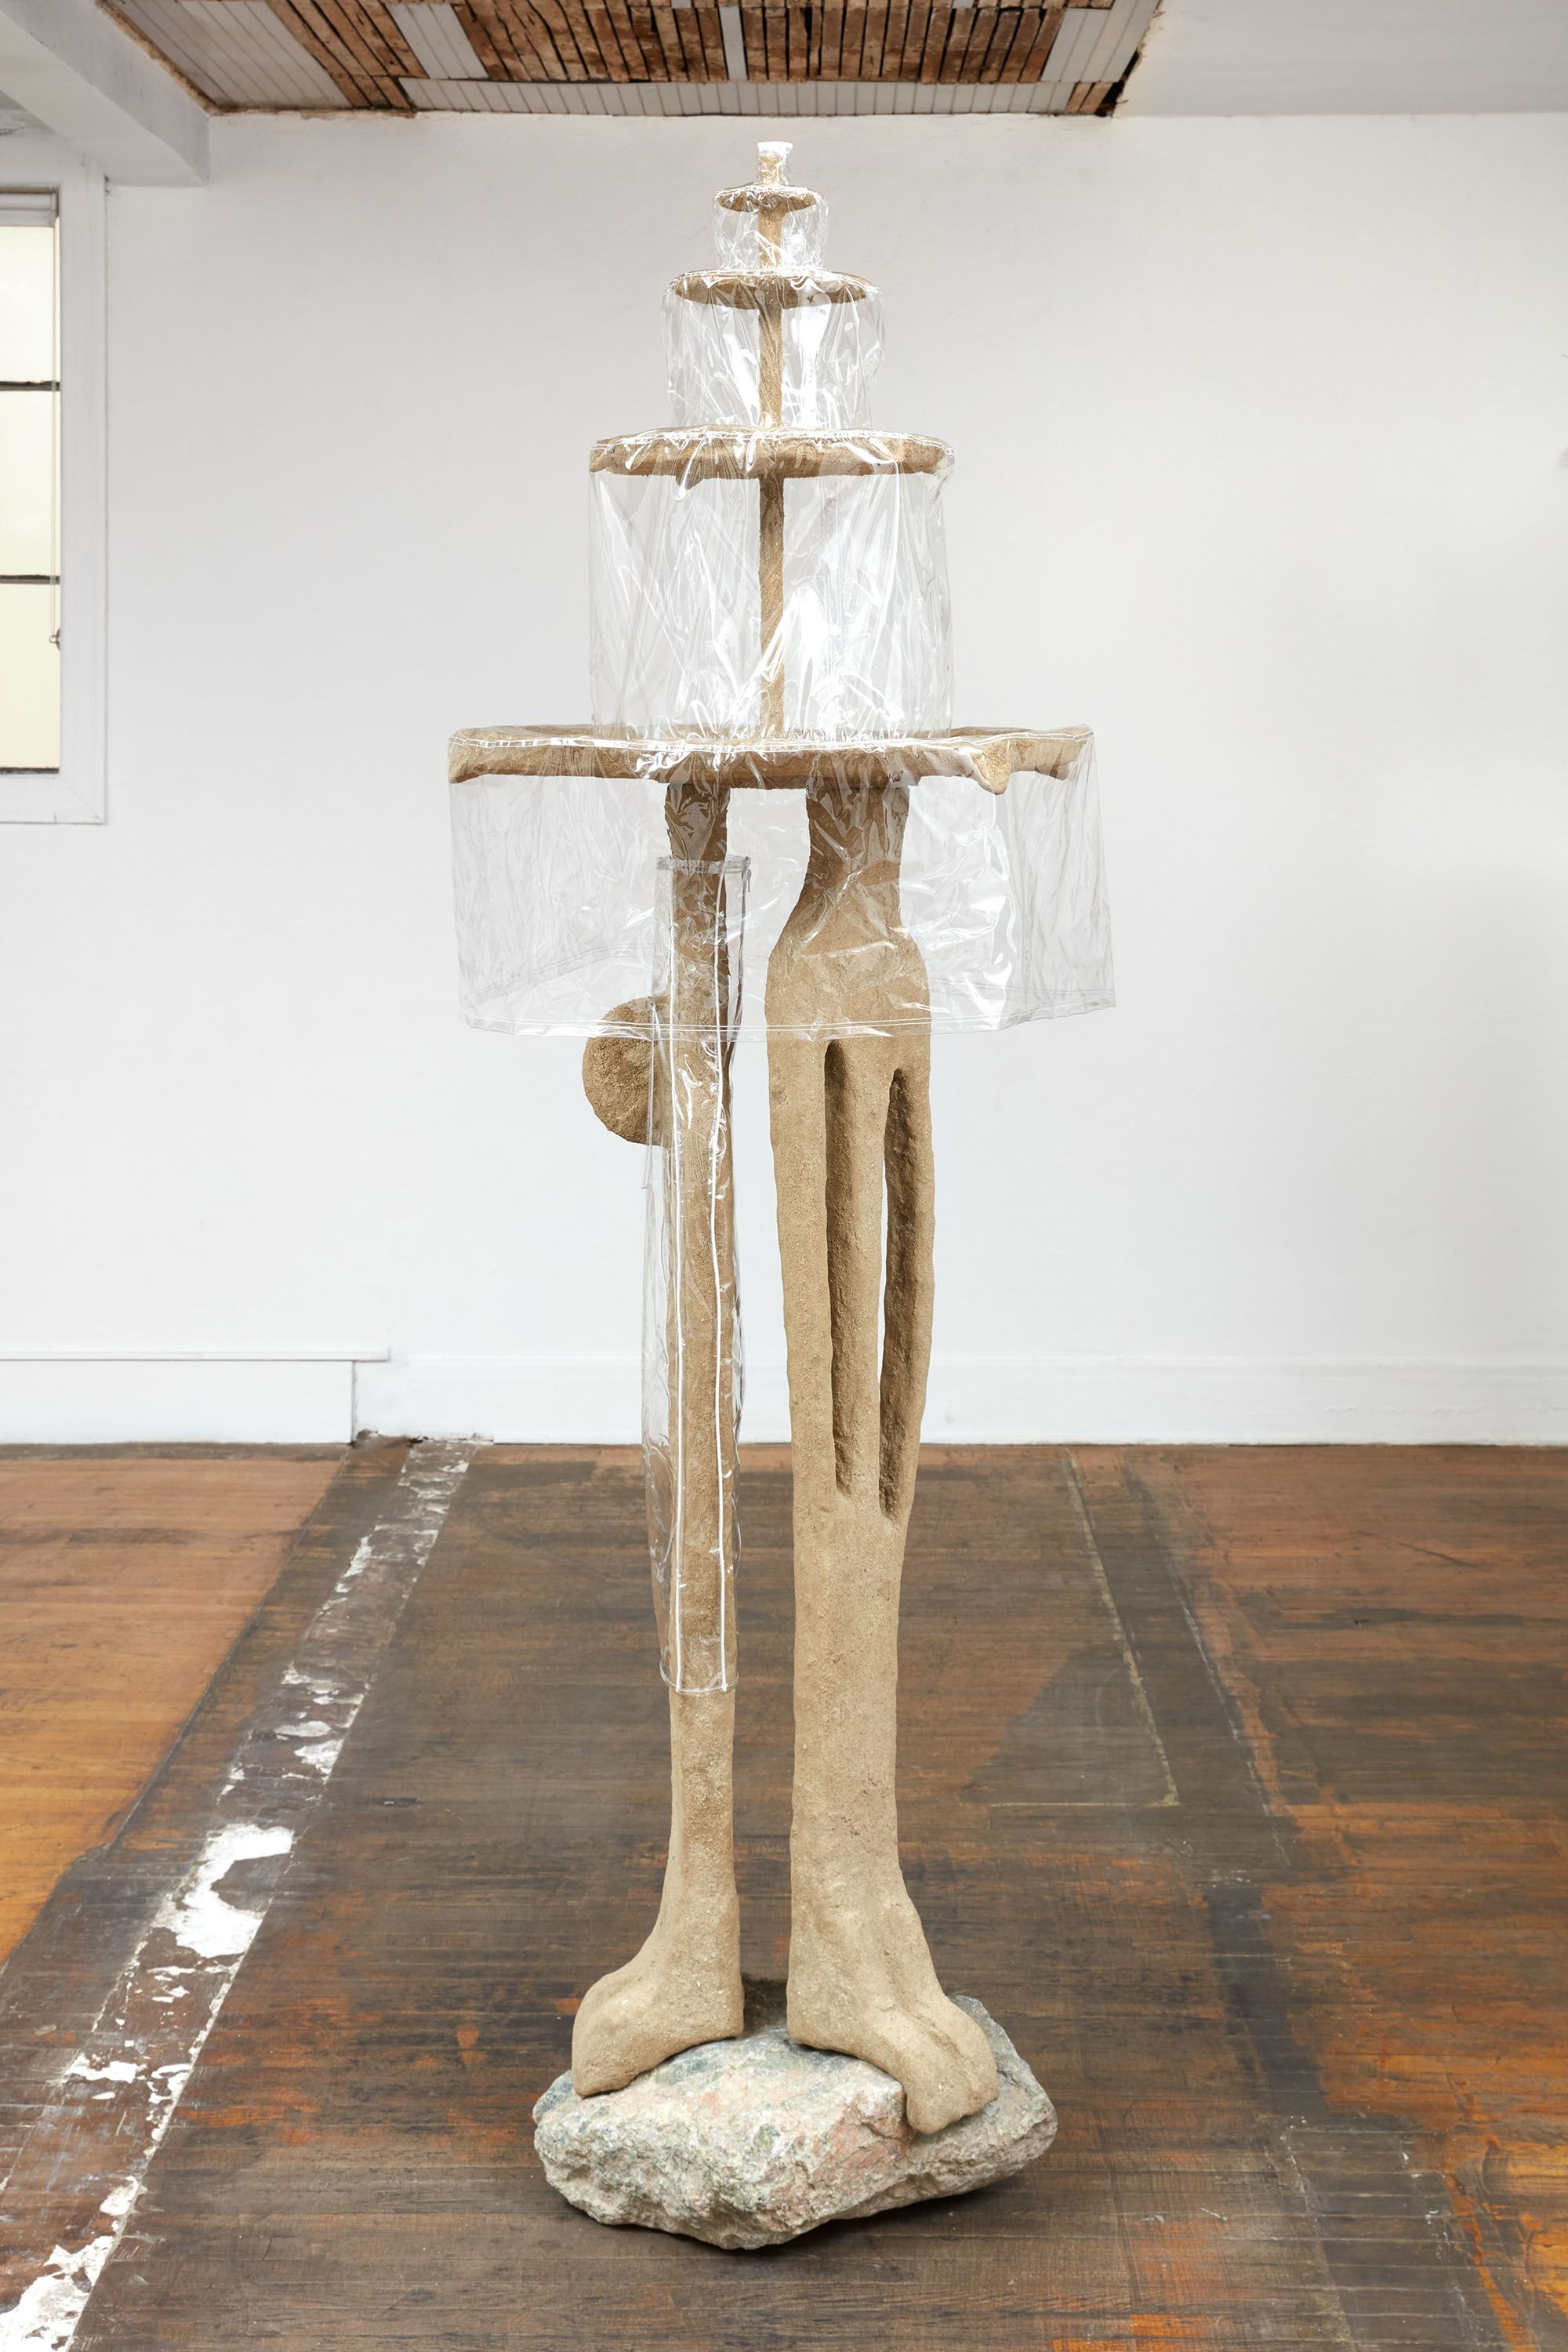 Untitled (fountain)